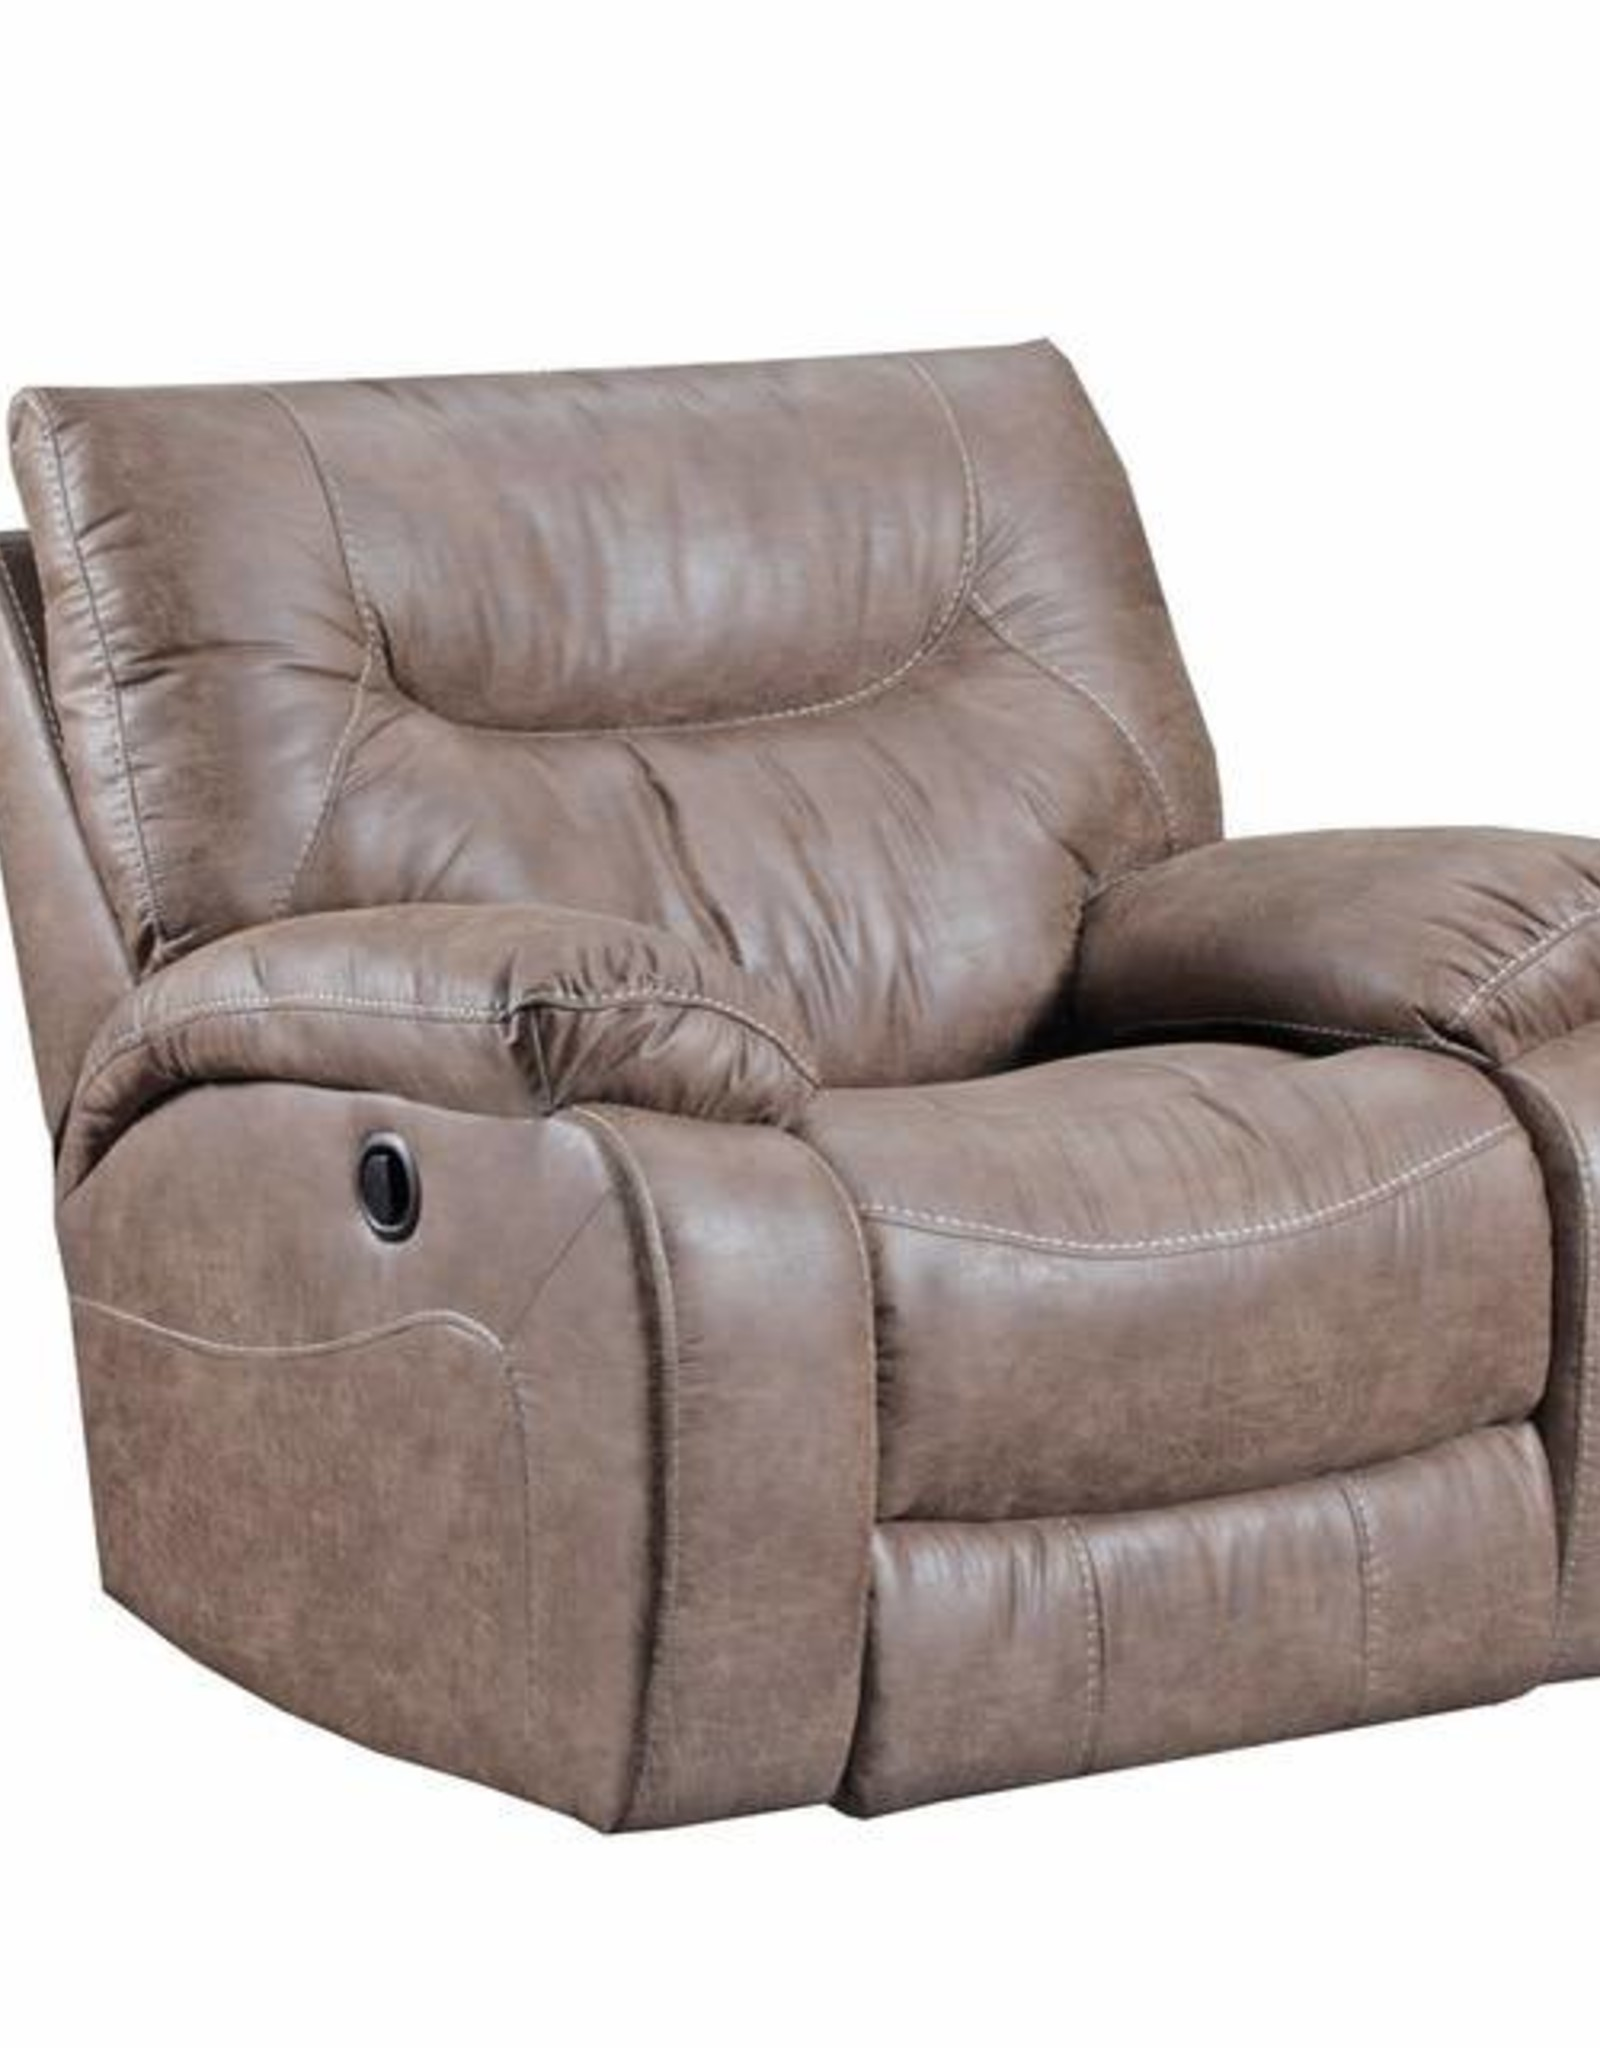 United Top Gun Saddle Rocker-recliner